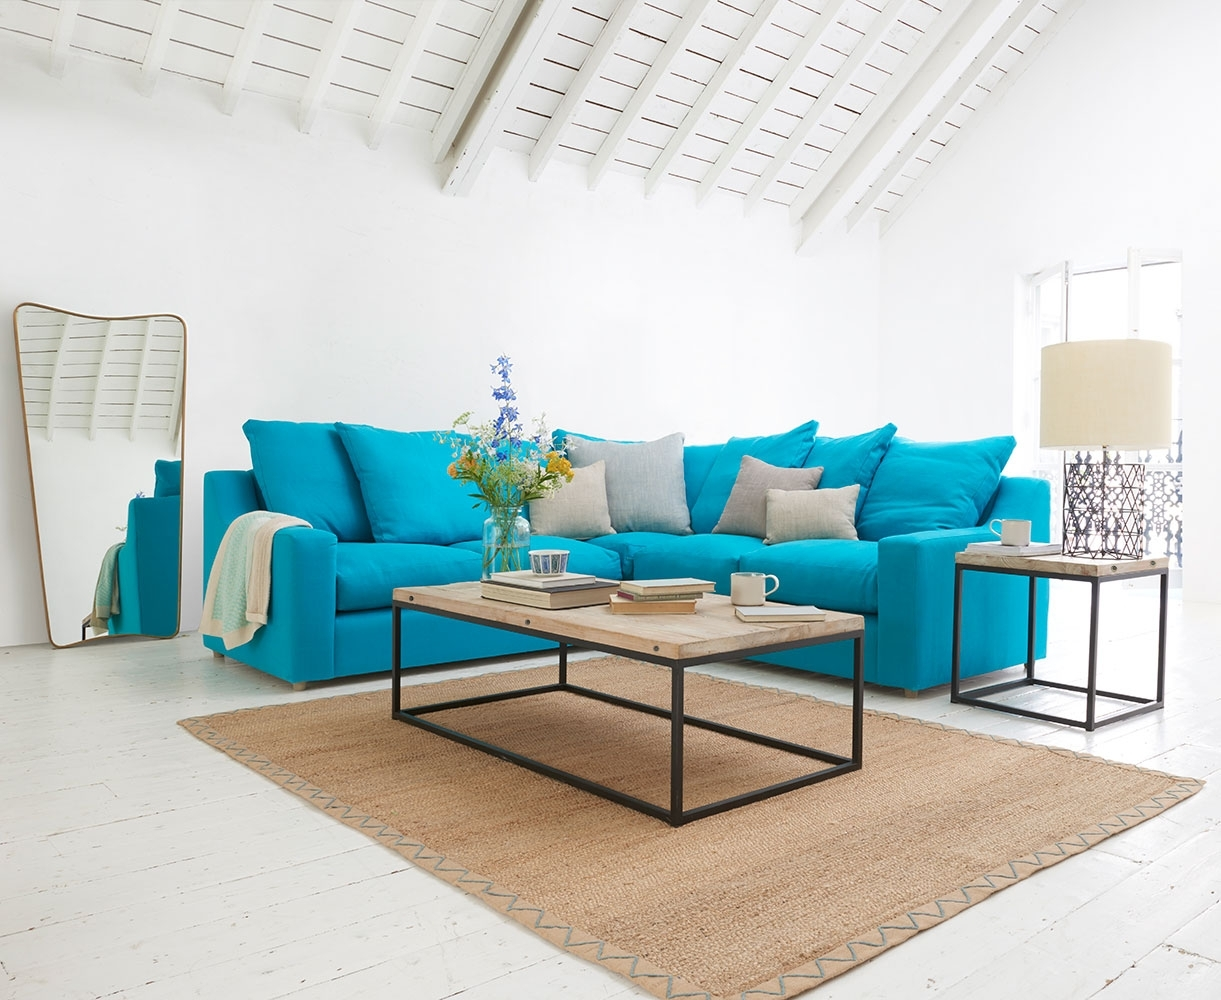 Sofas Made In Blighty | Cloud Corner | Loaf in Turquoise Sofas (Image 7 of 10)